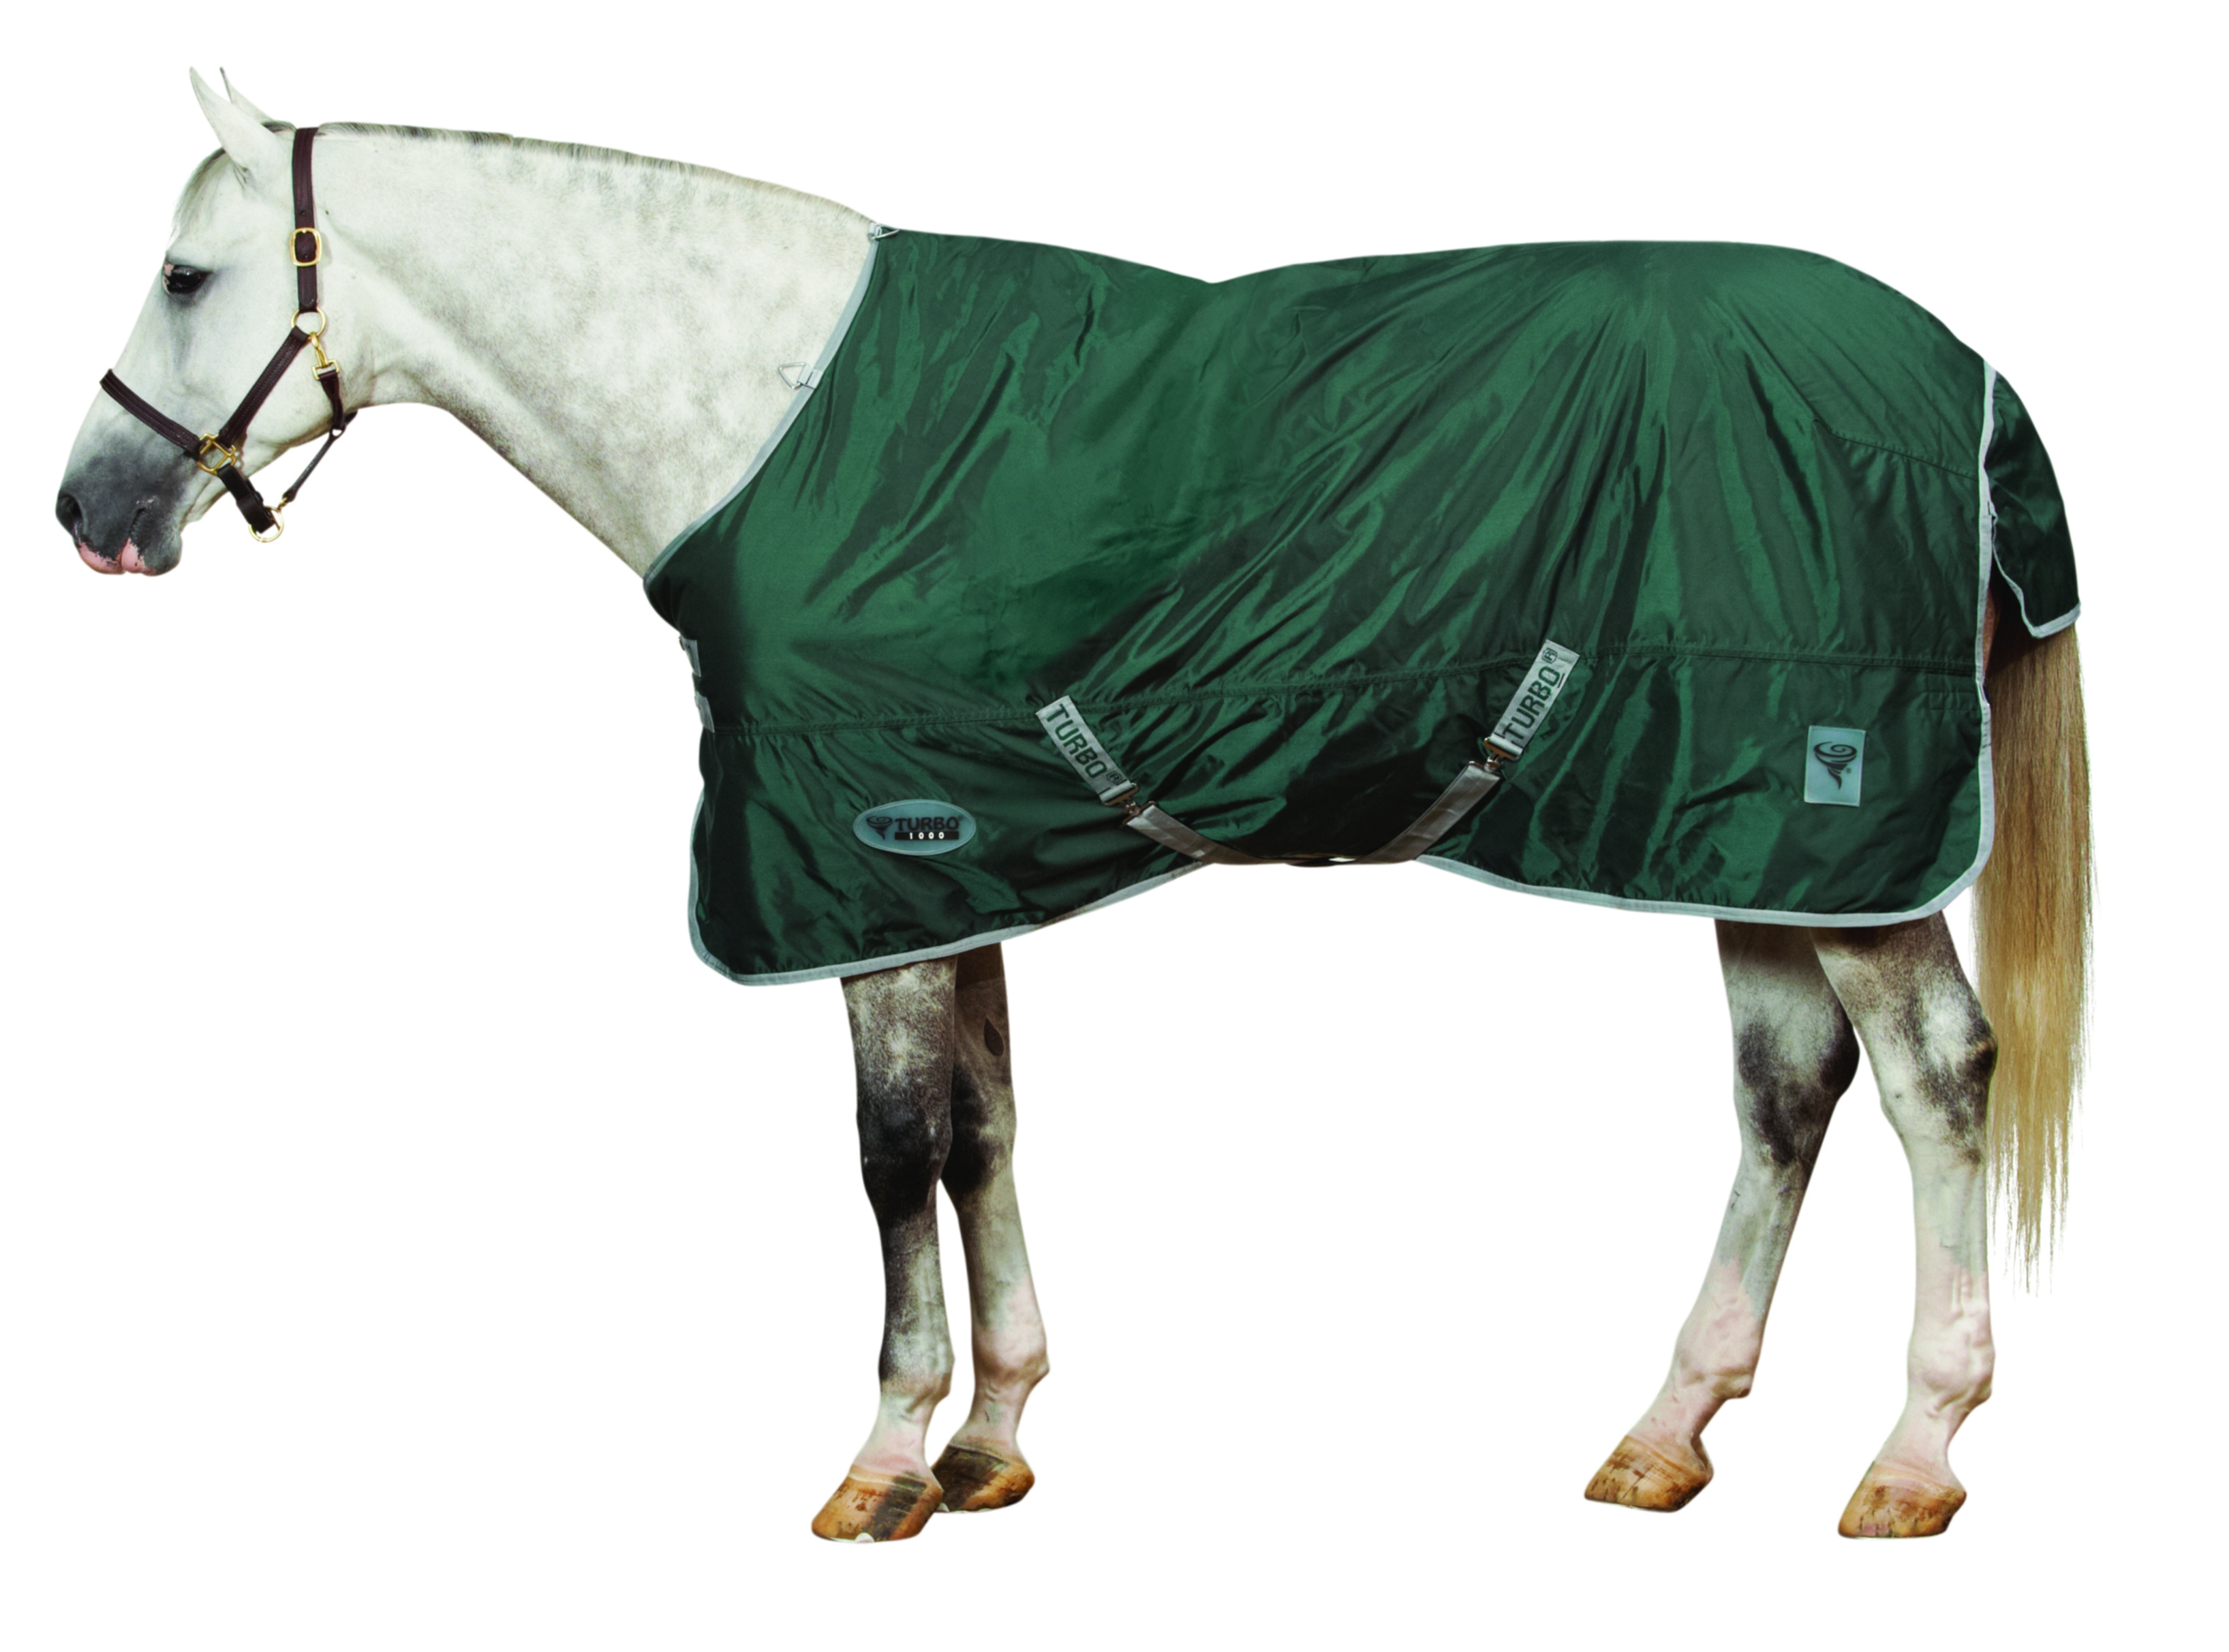 Centaur Turbo 1000D Waterproof / Breathable Heavyweight Turnout Blanket